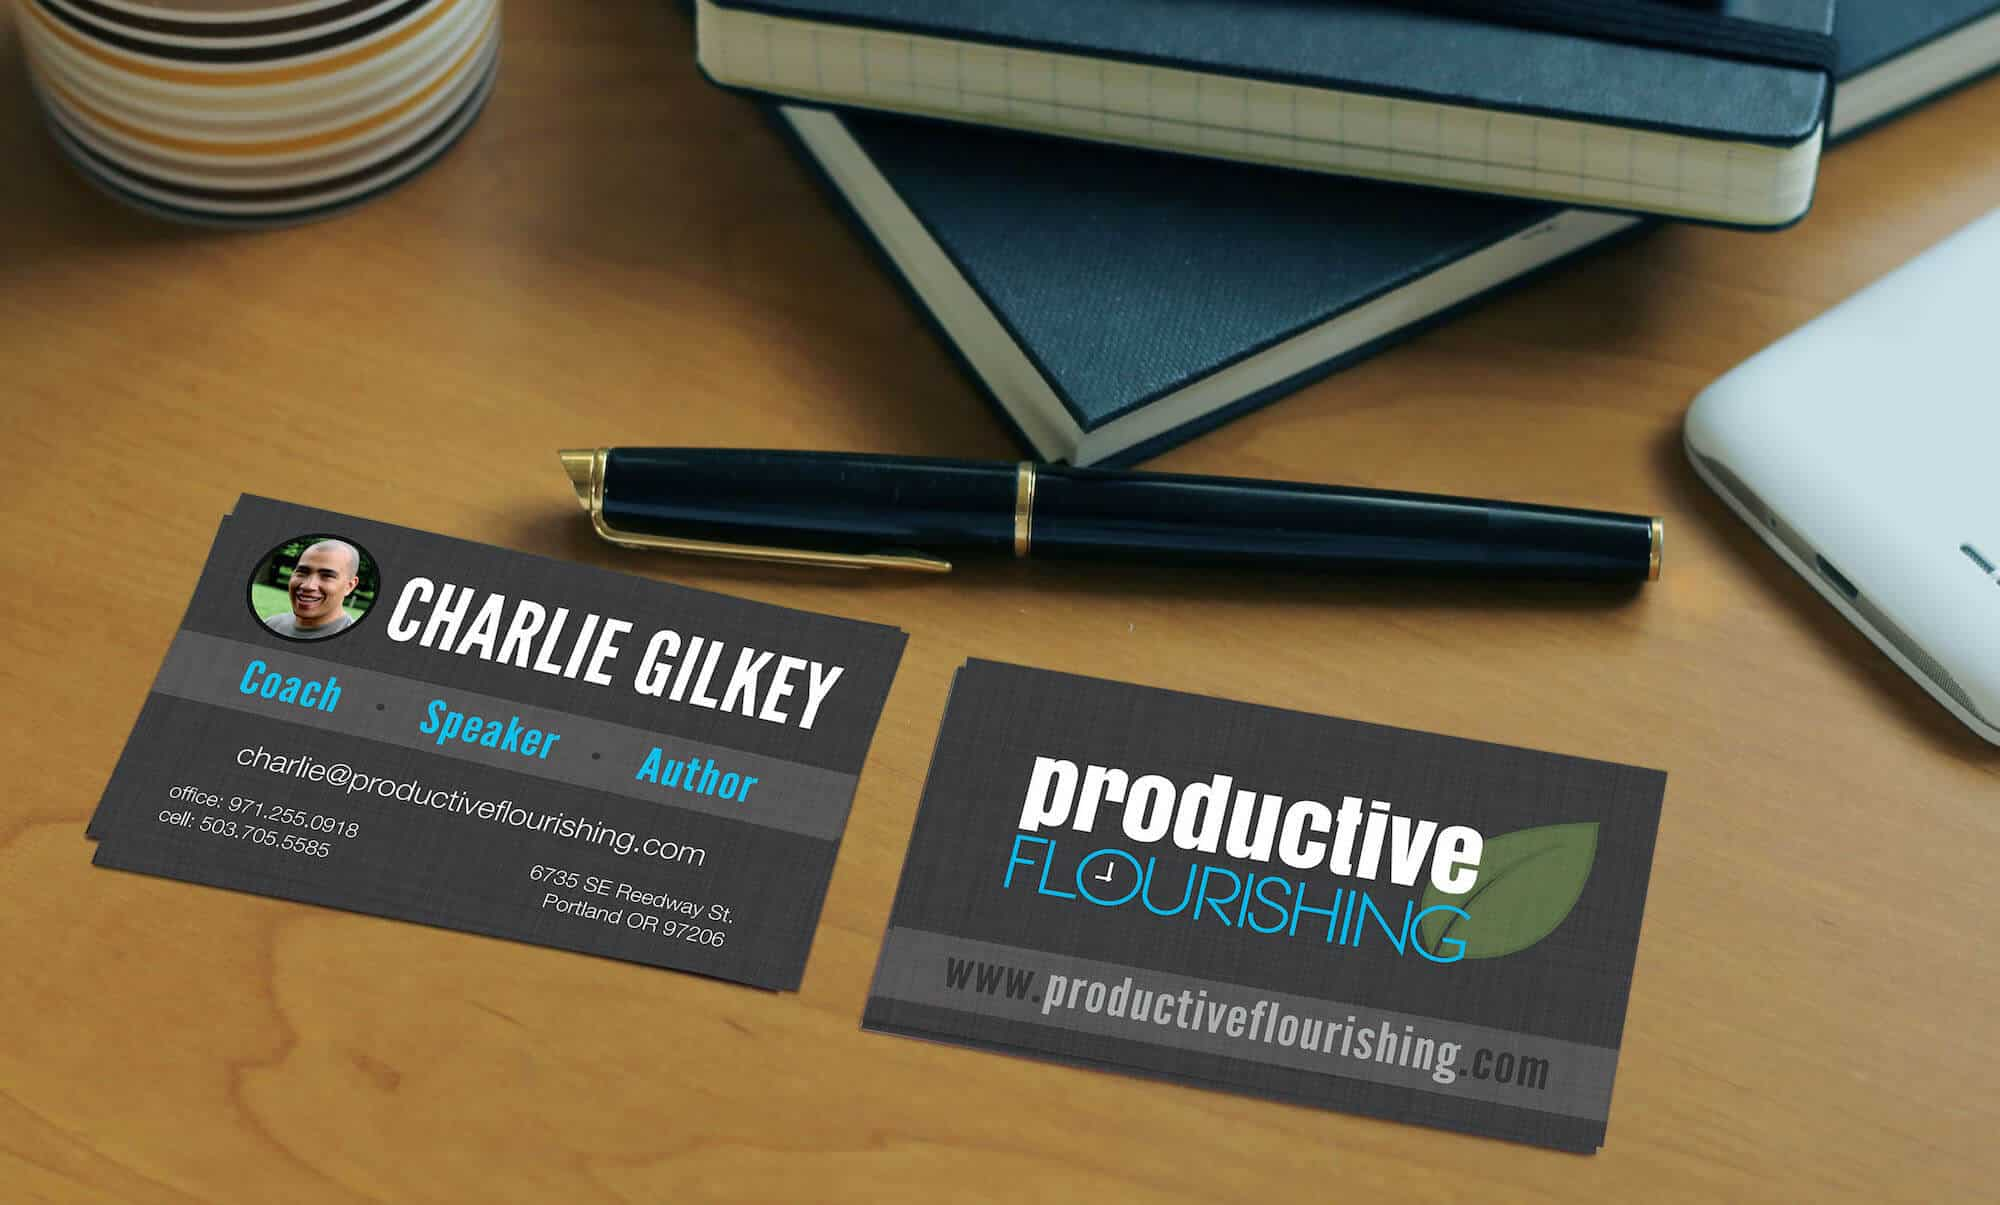 Charlie Gilkey business cards